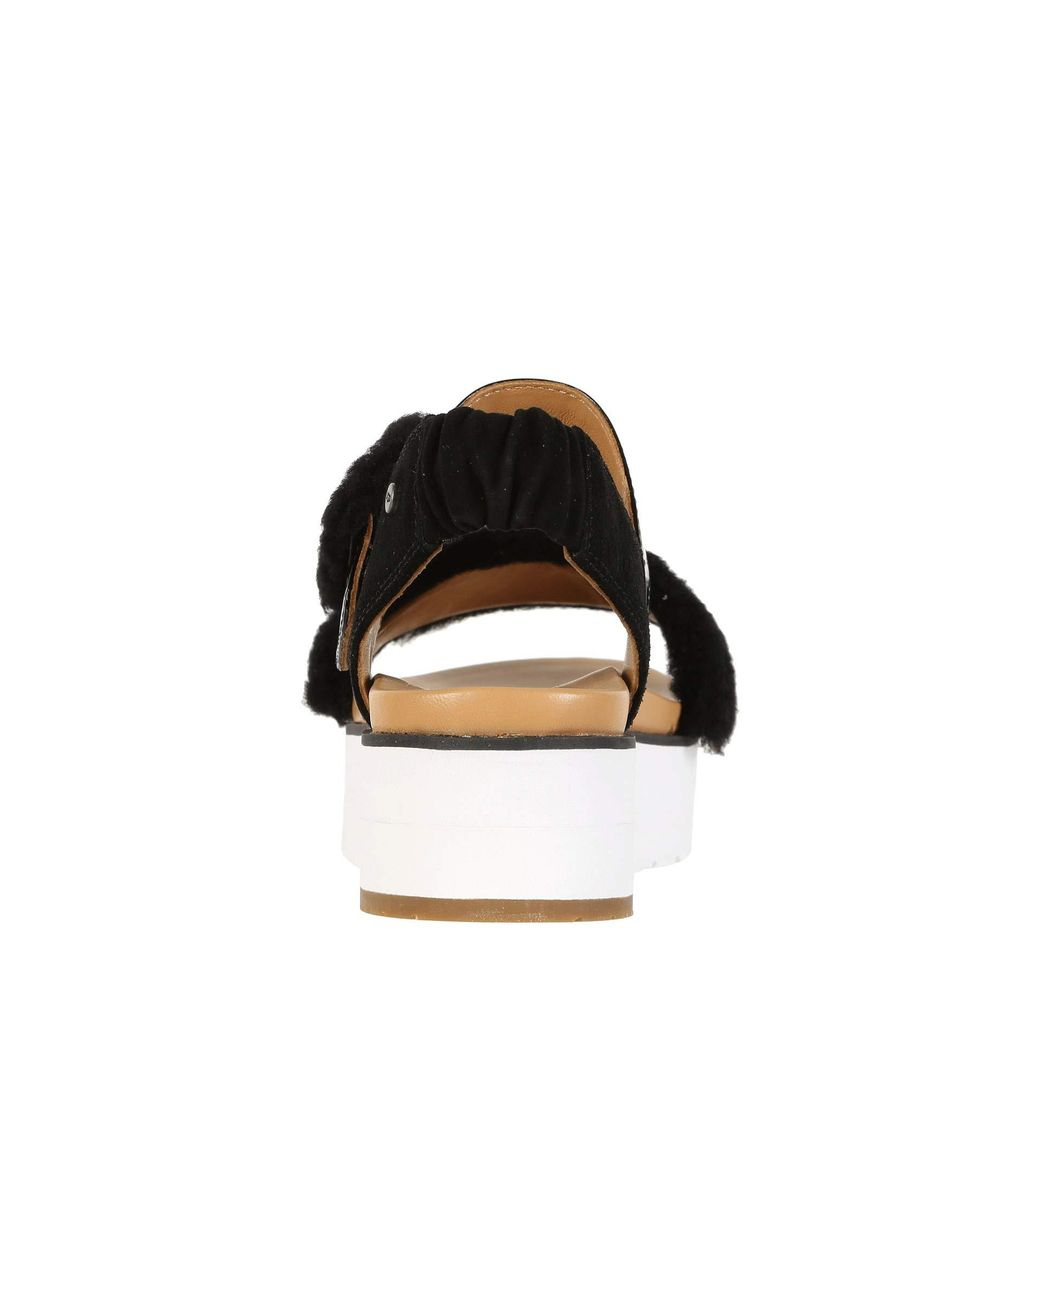 9d4e97a44b UGG Le Fluff (jasmine) Women's Sandals in Black - Lyst